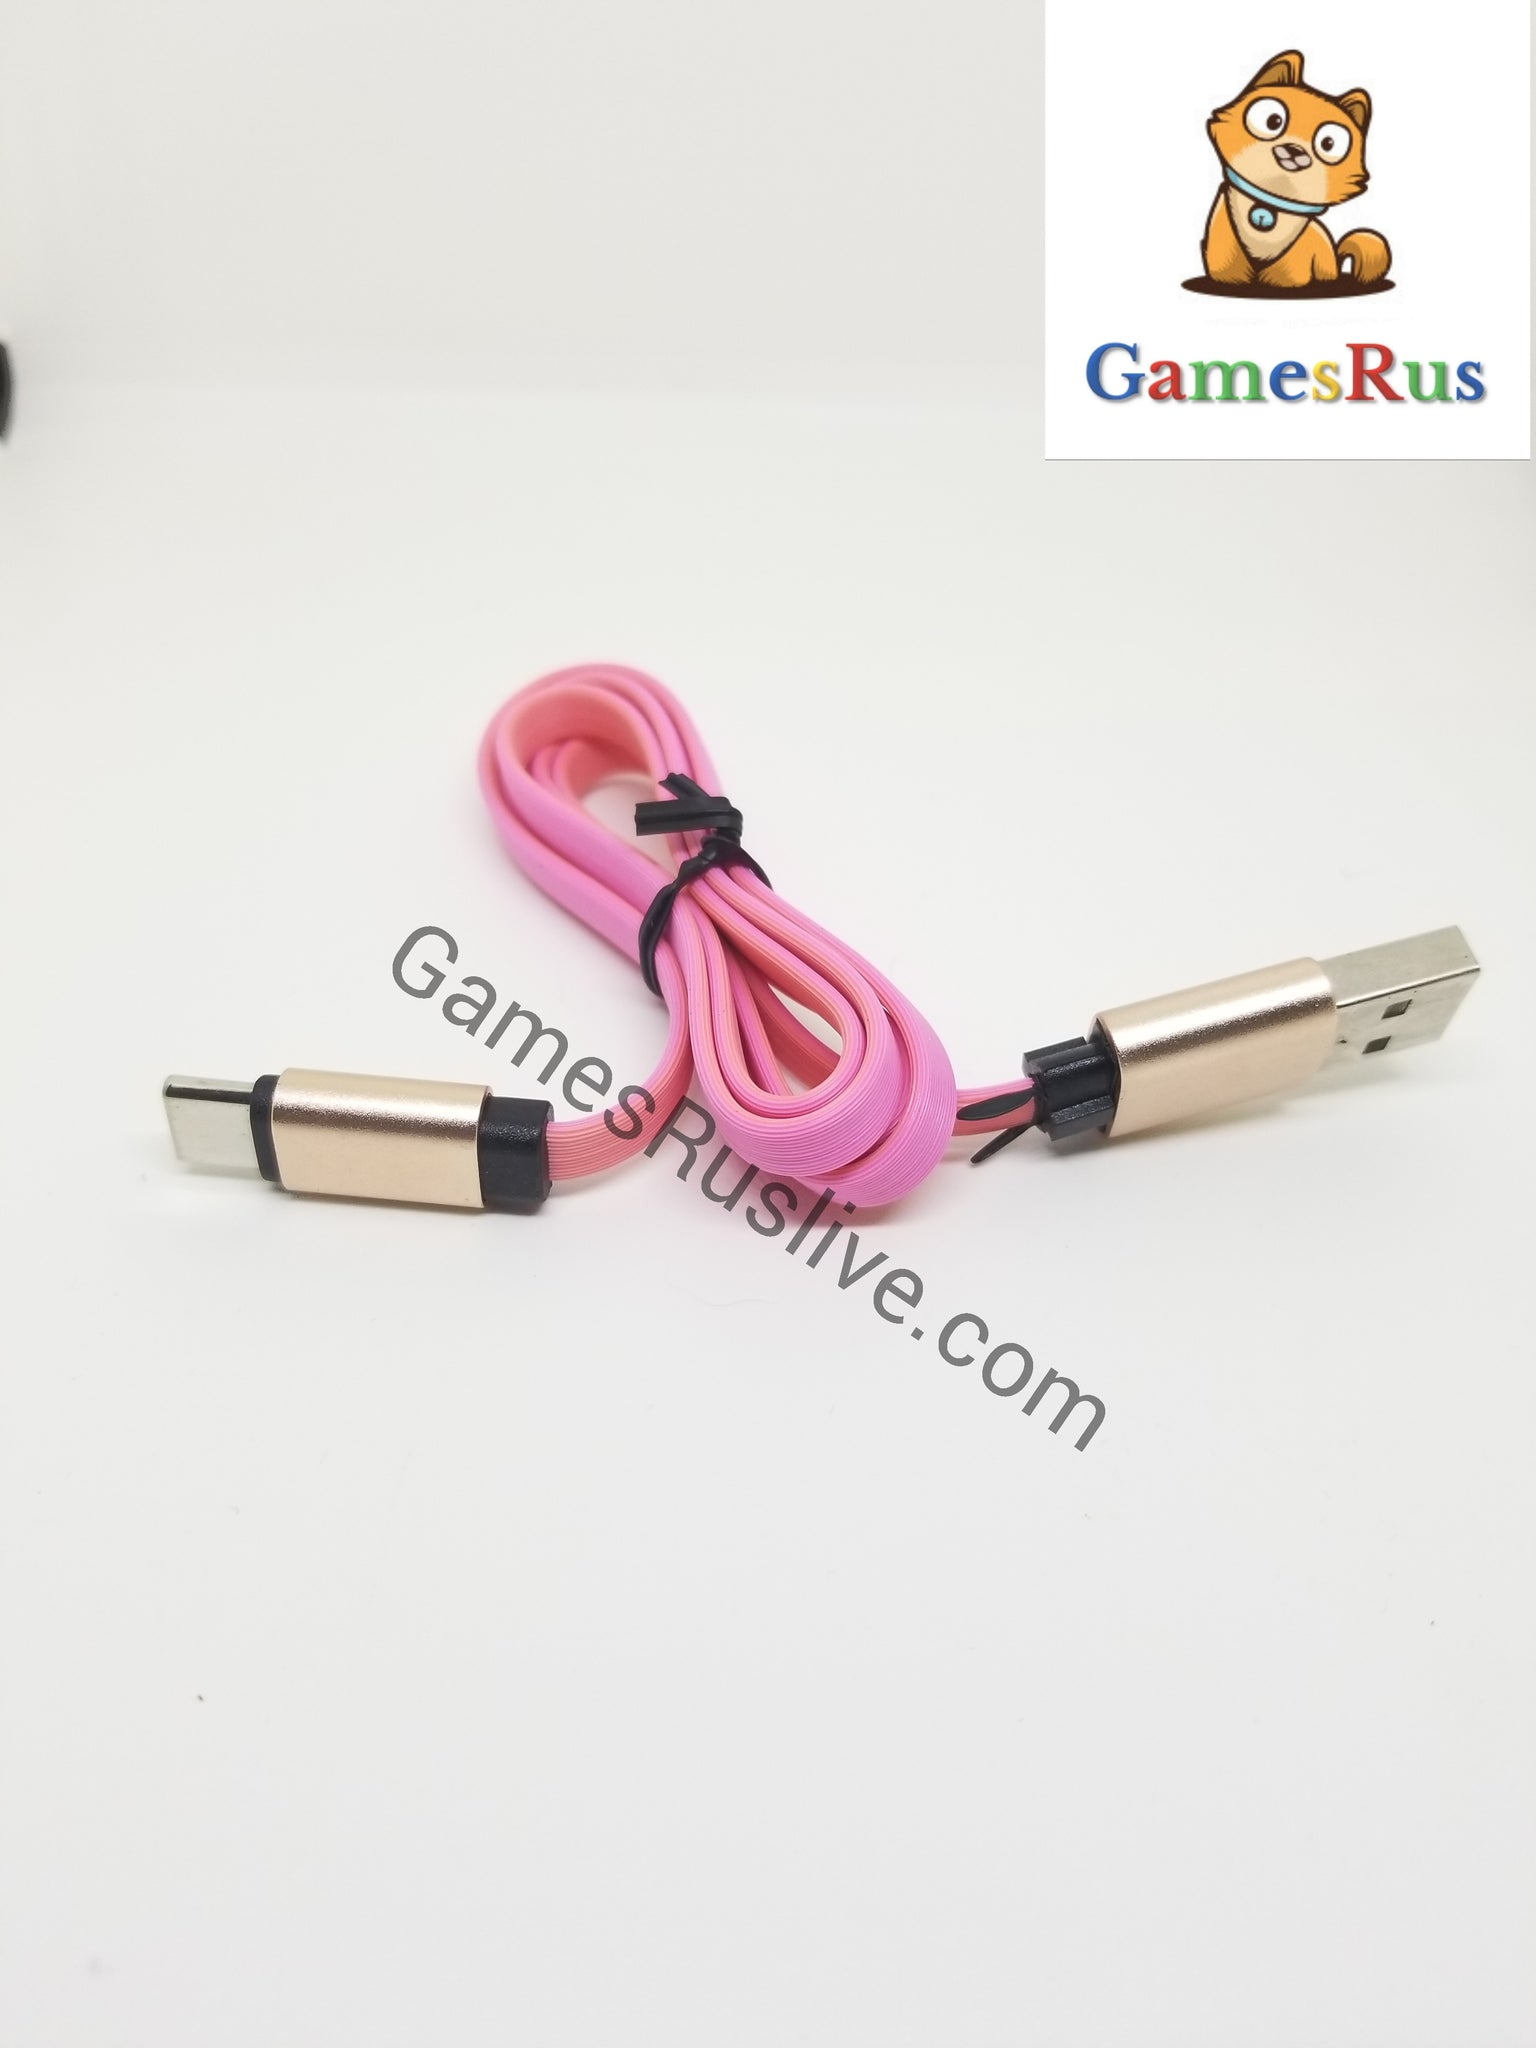 USB Type C to USB Fast Charge Cable for Samsung Phones USB Type C to USB Cable